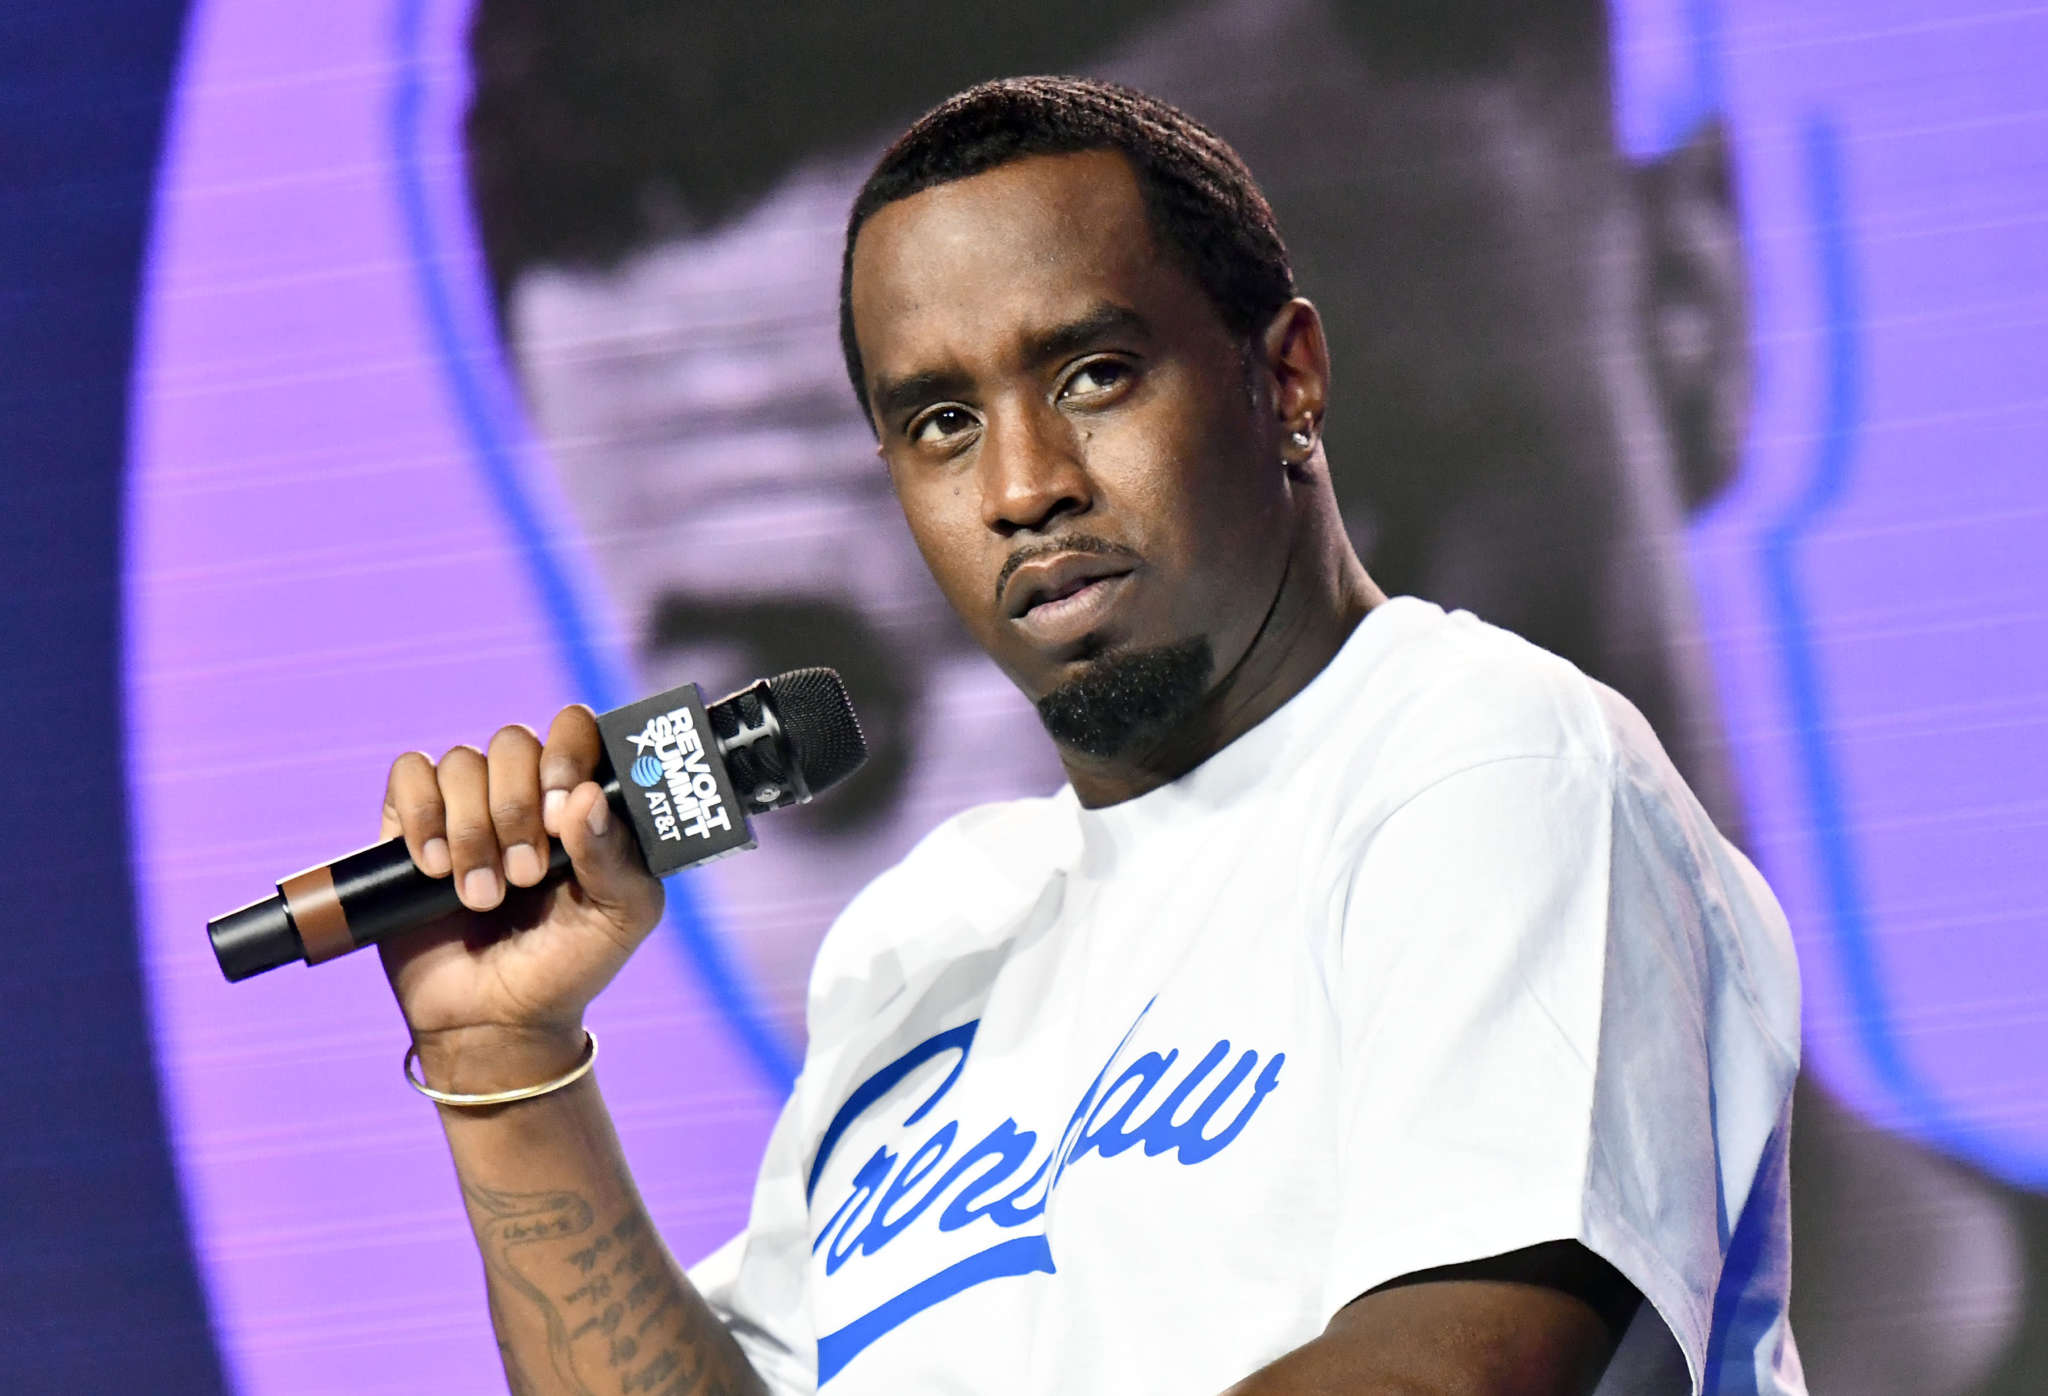 Diddy Tells His Fans That The Time For Change Has Come - See The Video That He Shared